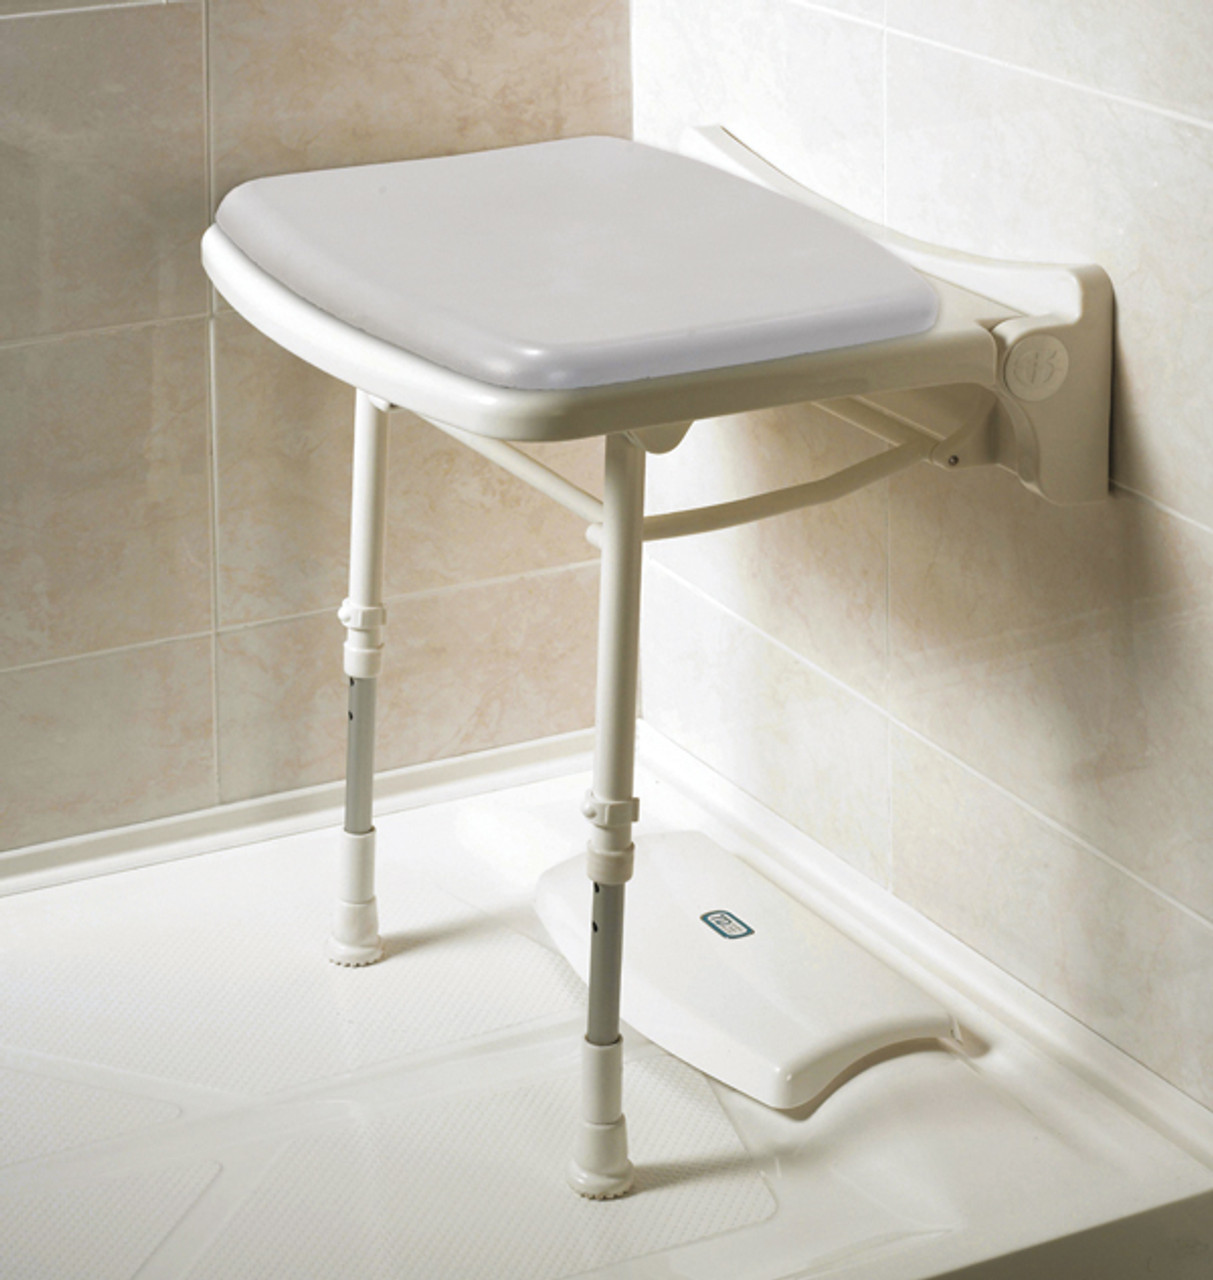 ... Padded Fold Up Shower Seat Gray Pad AKW-02000P & Wall Mounted Compact Shower Seat - CareProdx